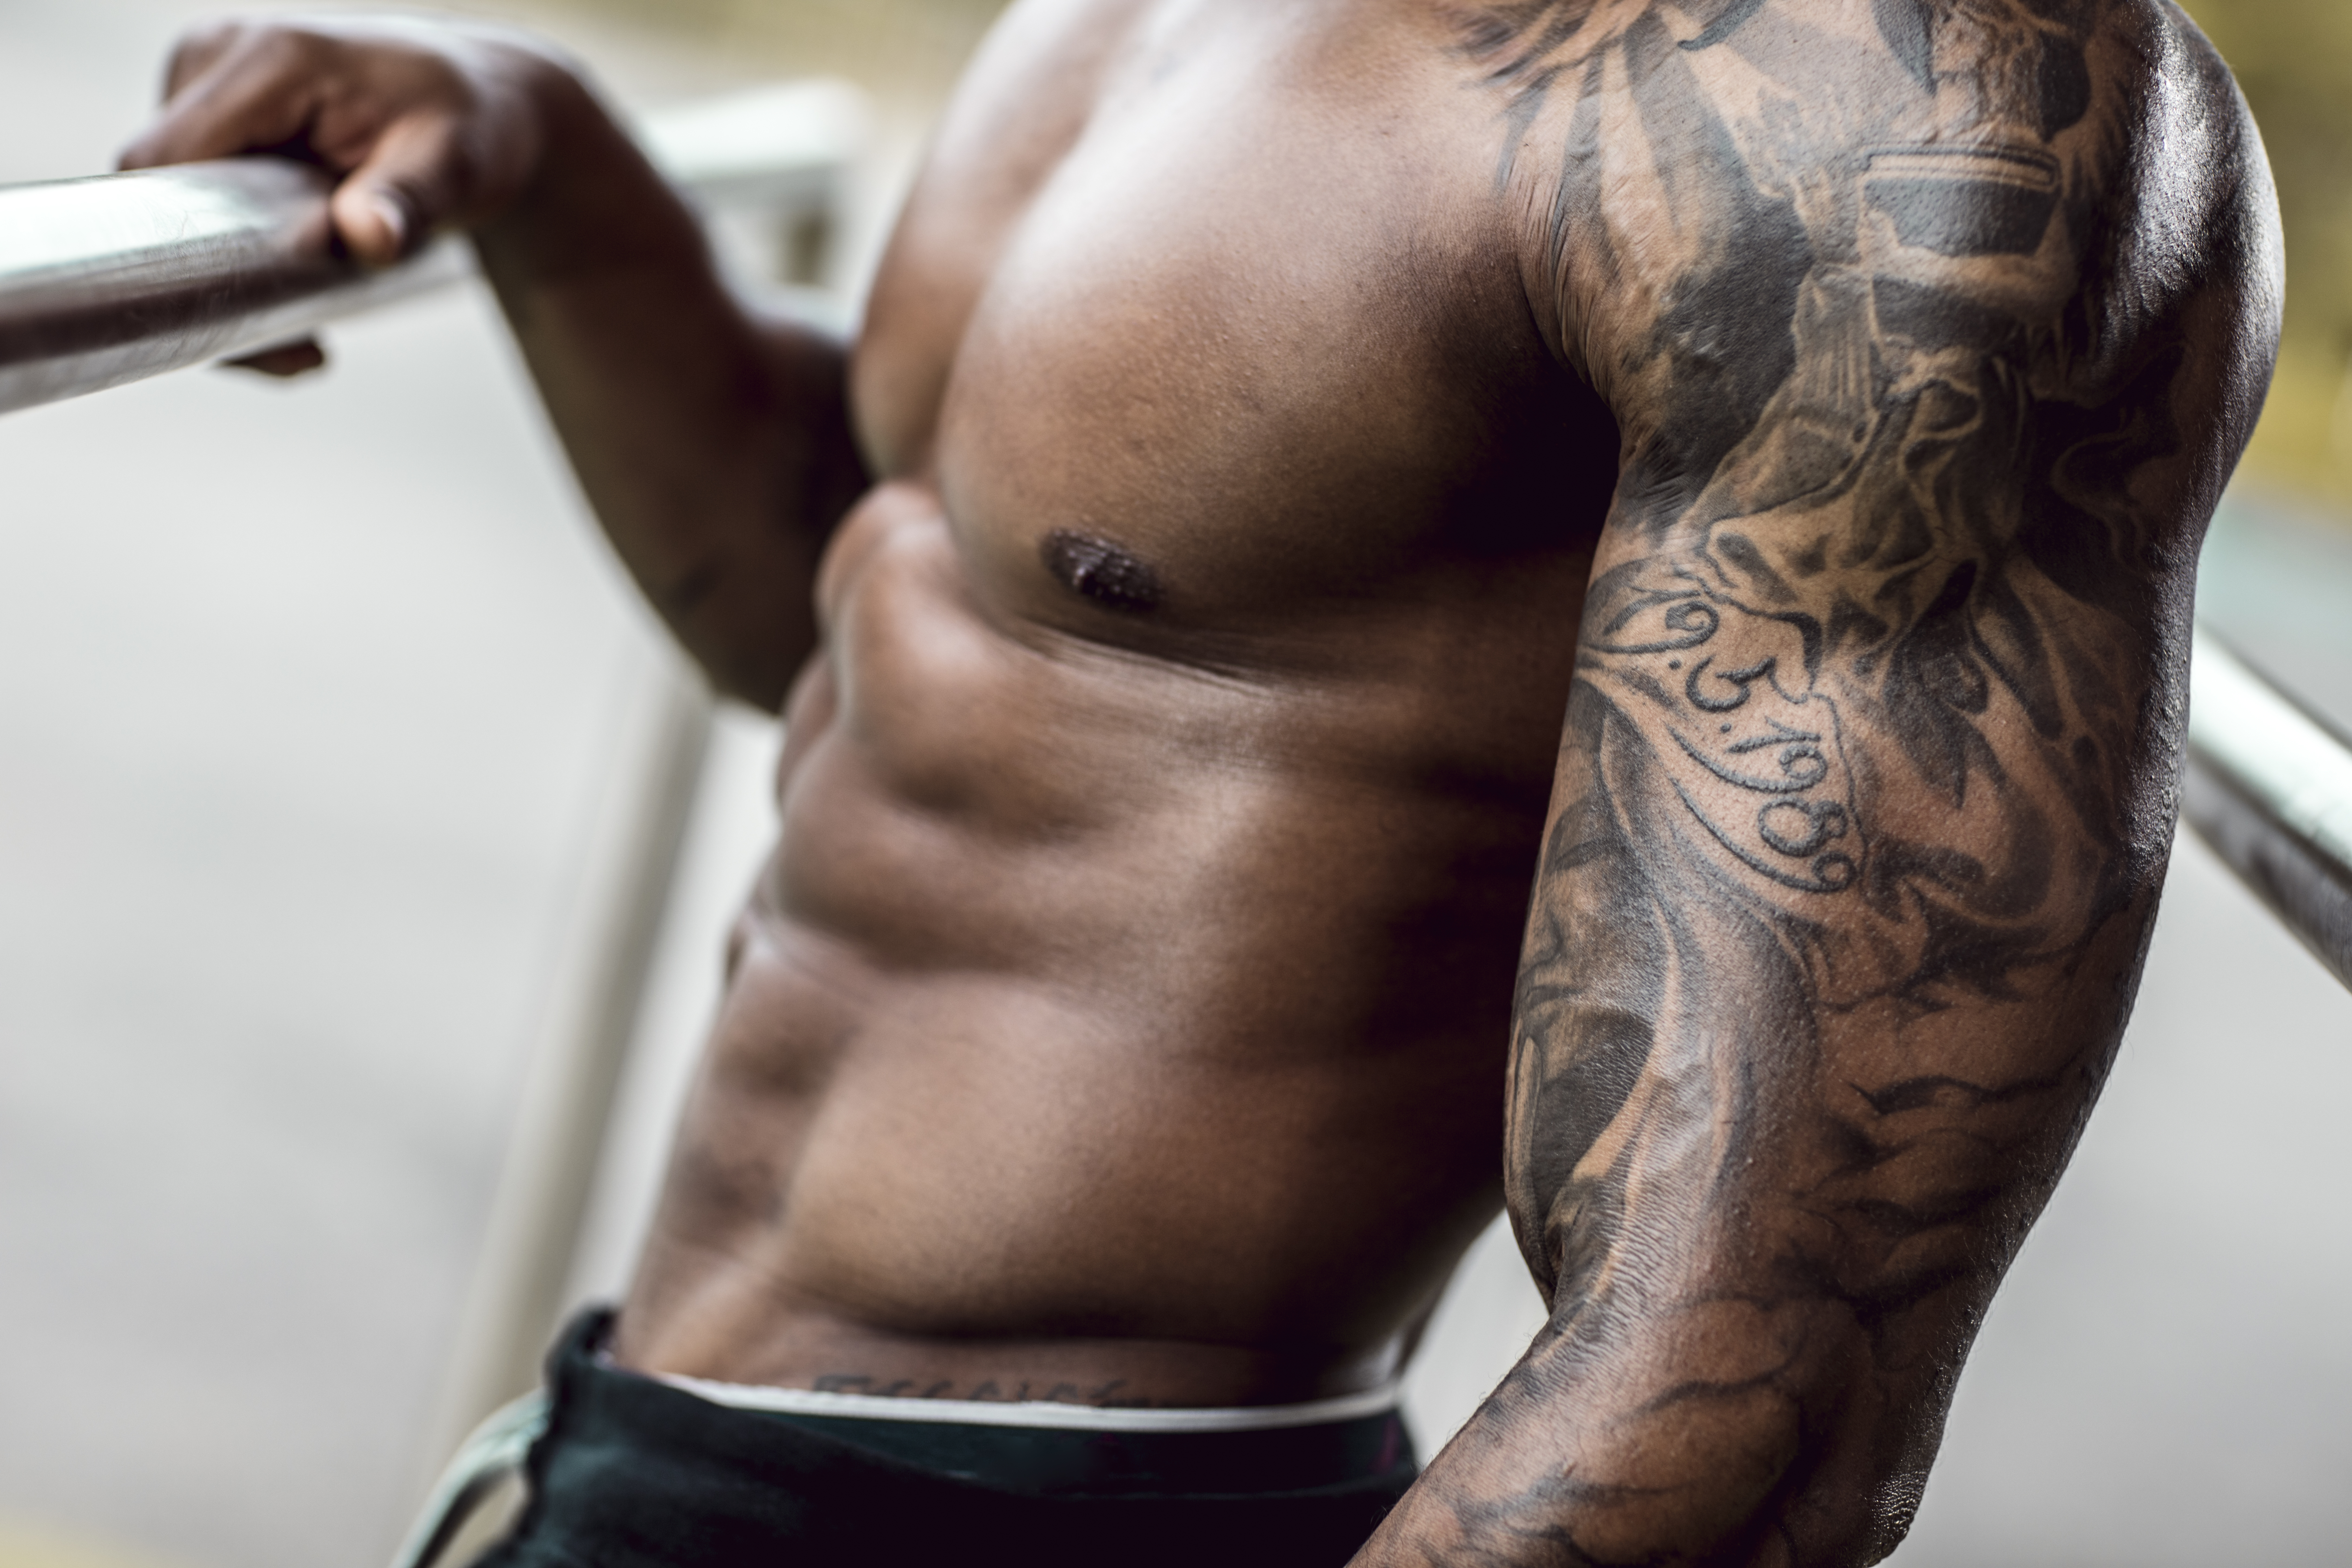 Tattooed biceps of physical athlete, close-up